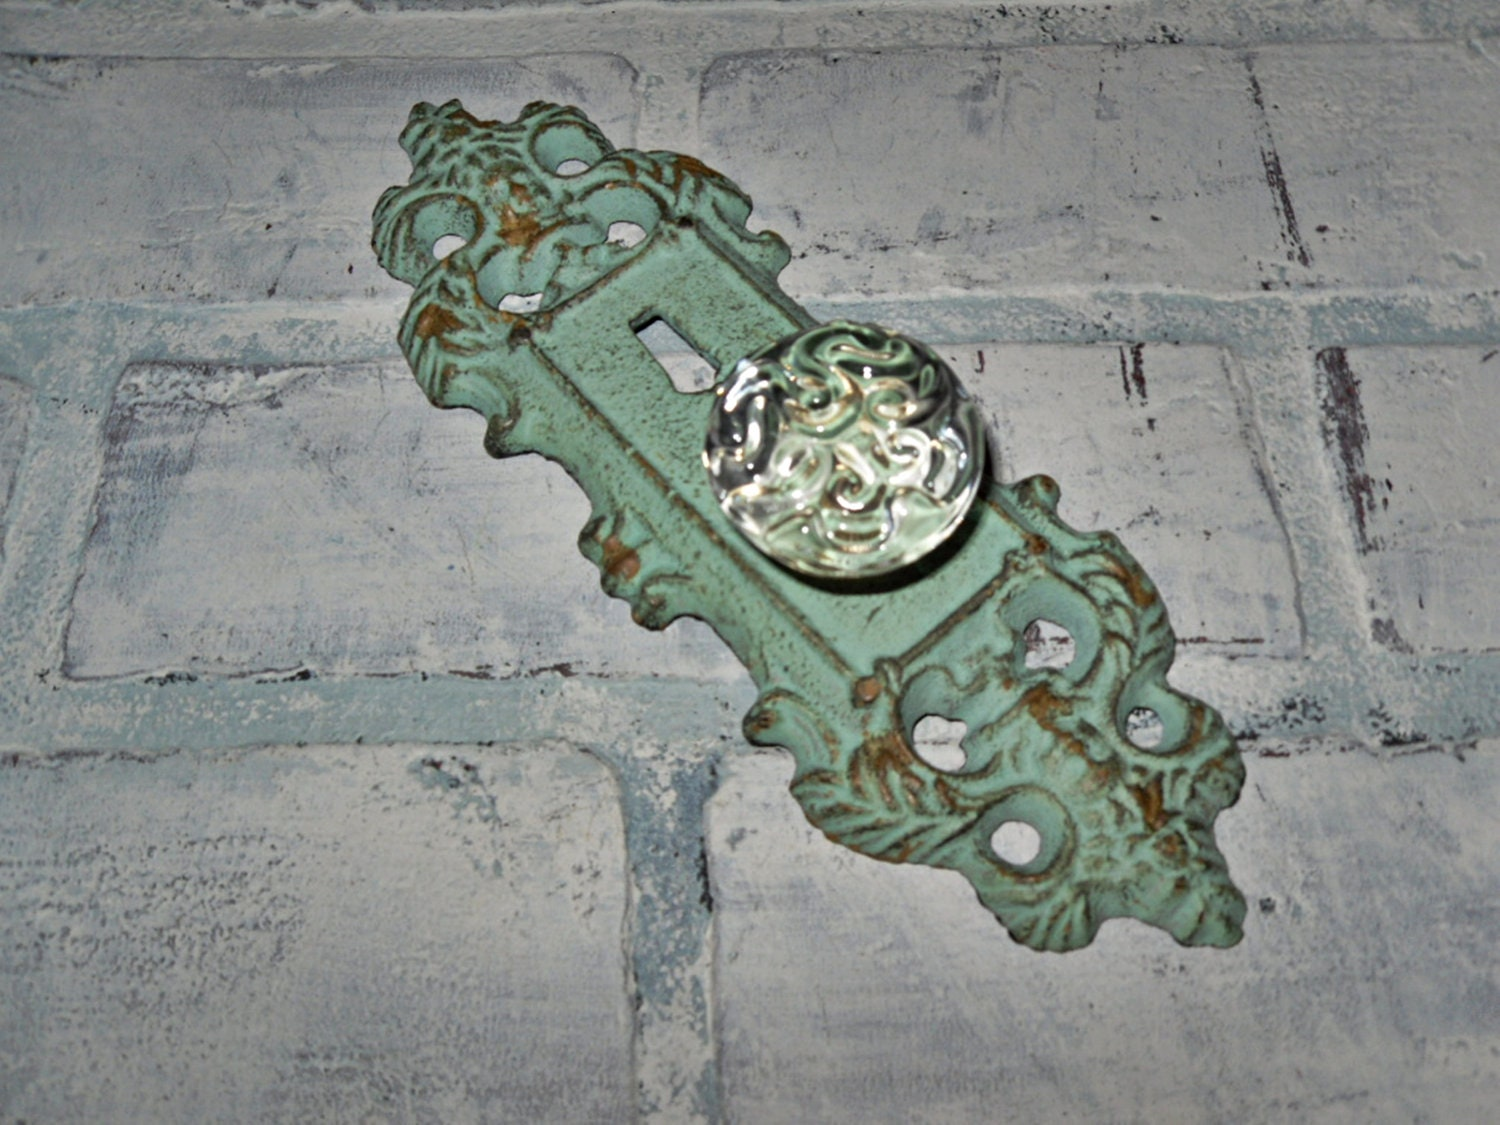 Ornate Decorative Cast Iron Door Plate with Glass by Theshabbyshak